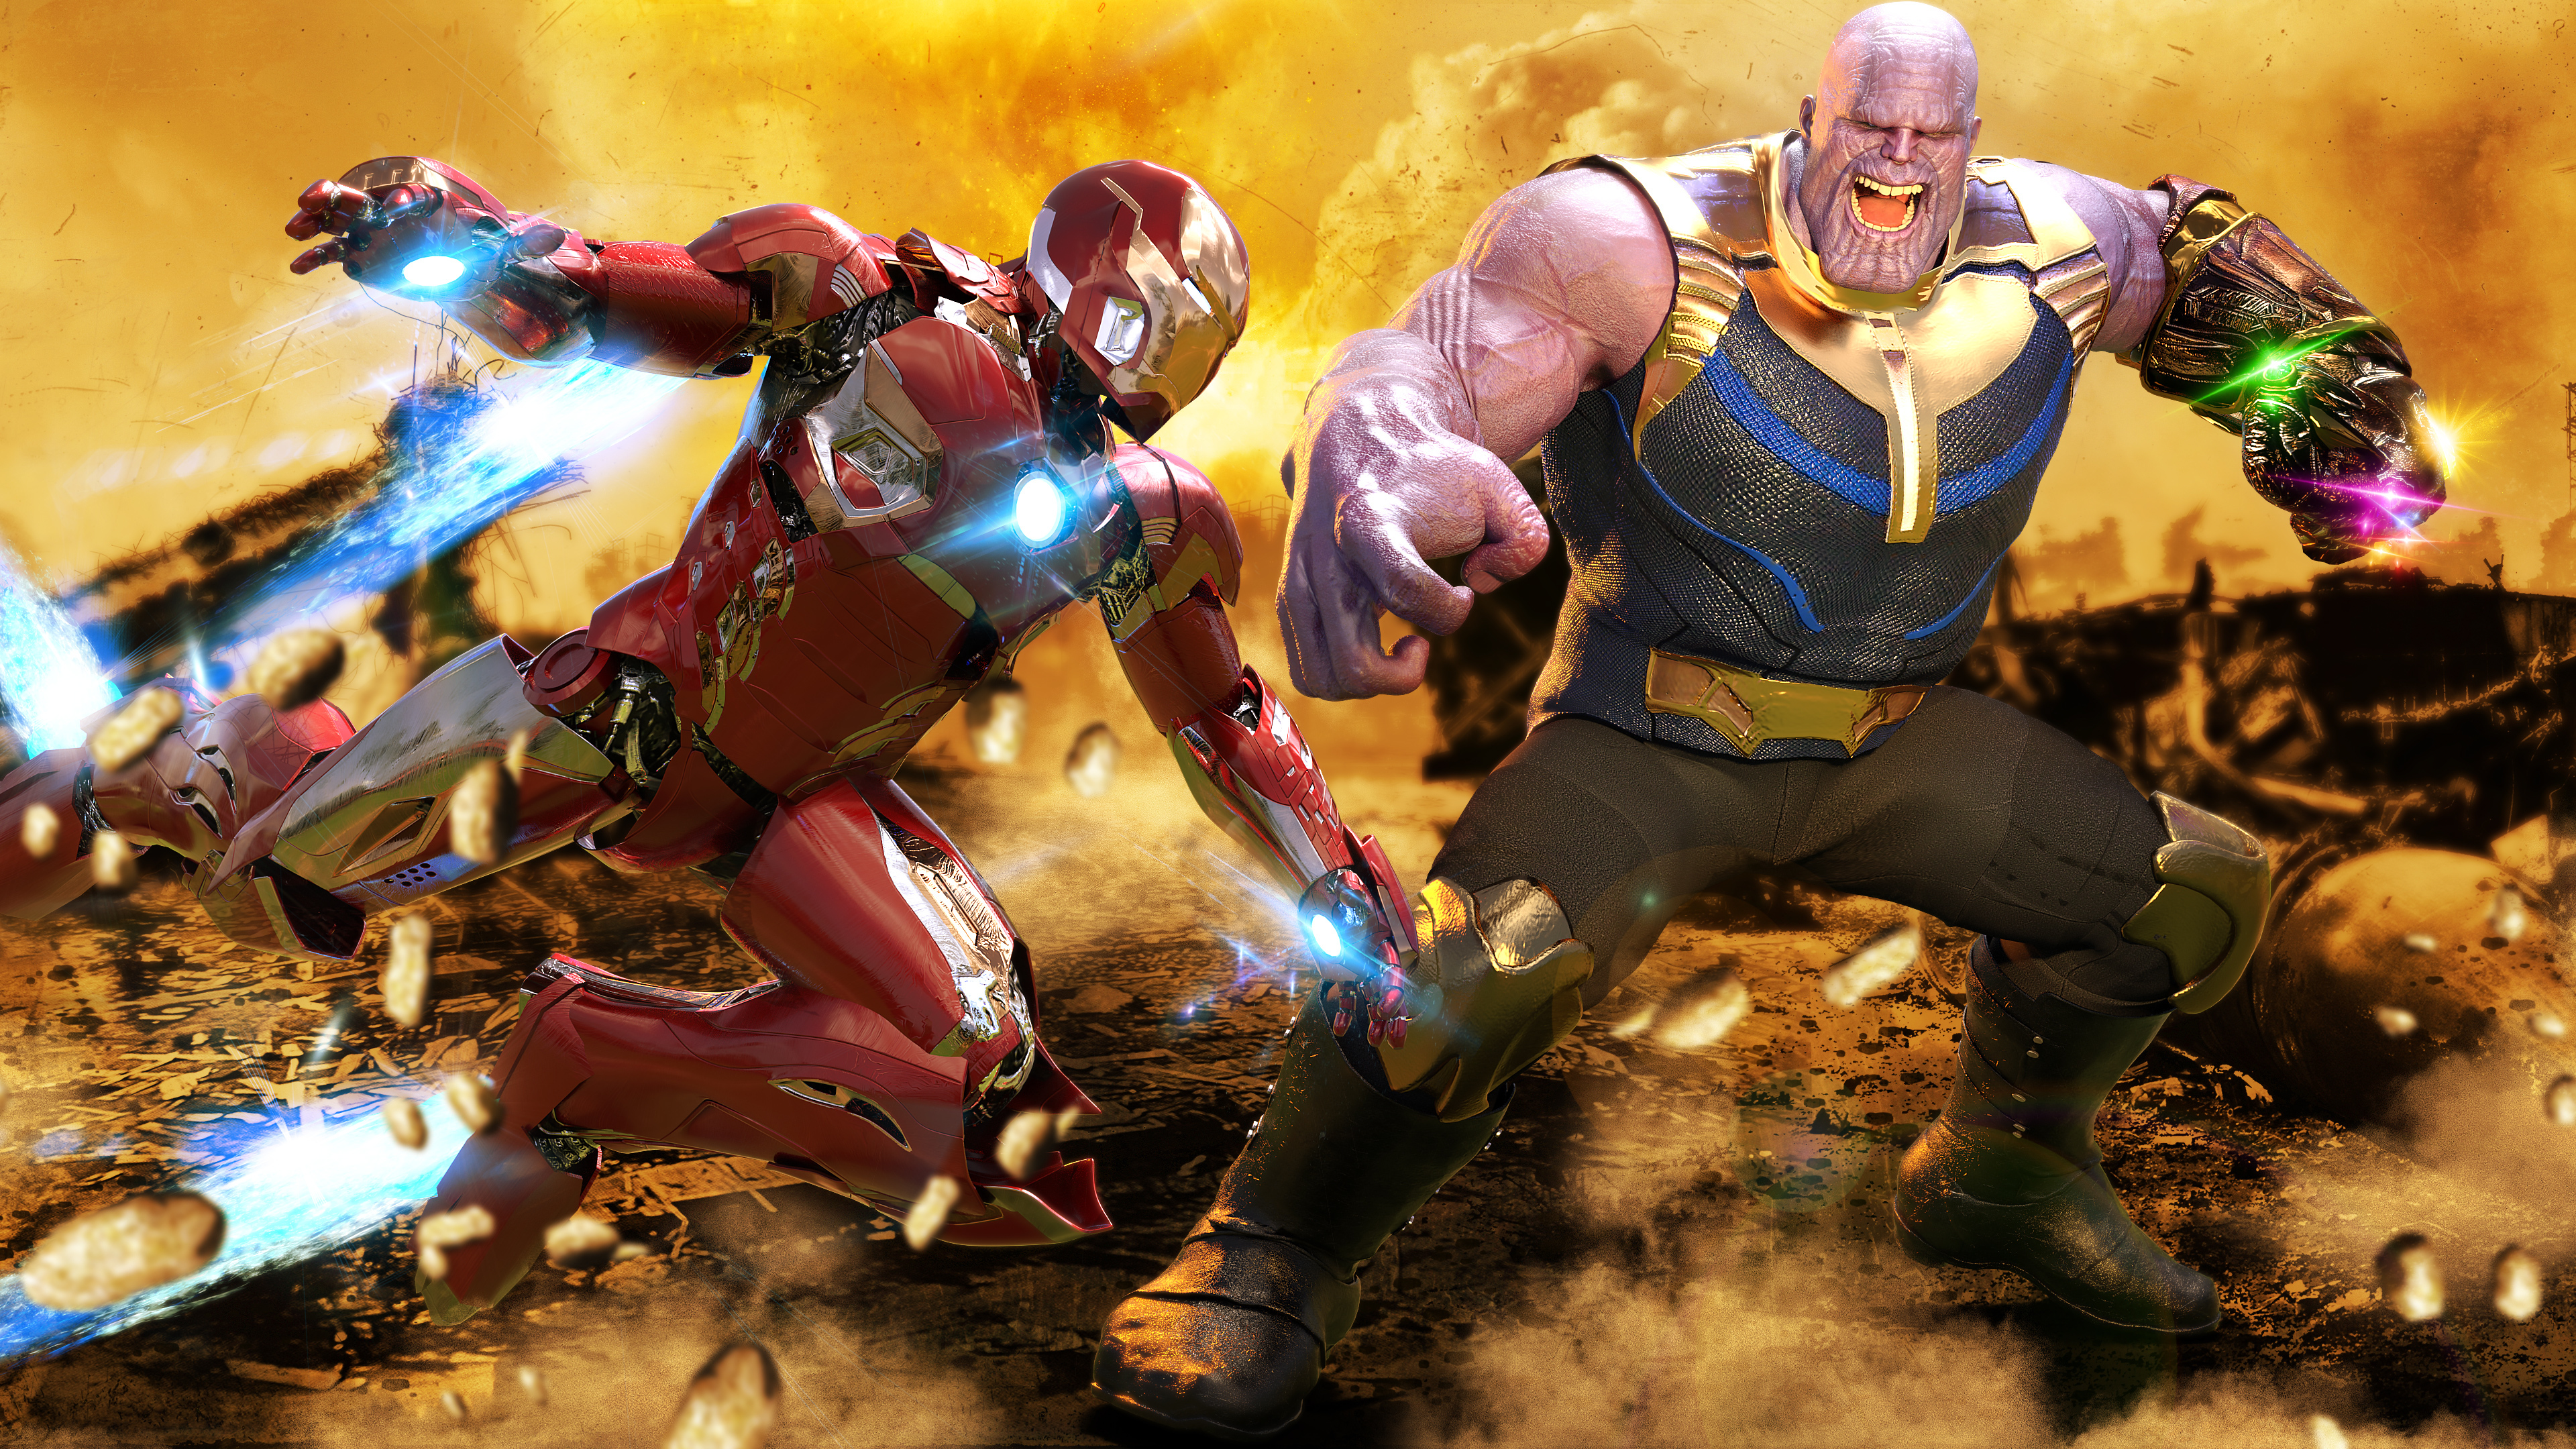 Wallpaper 4k Iron Man Vs Thanos 4k 4k Wallpapers Deviantart